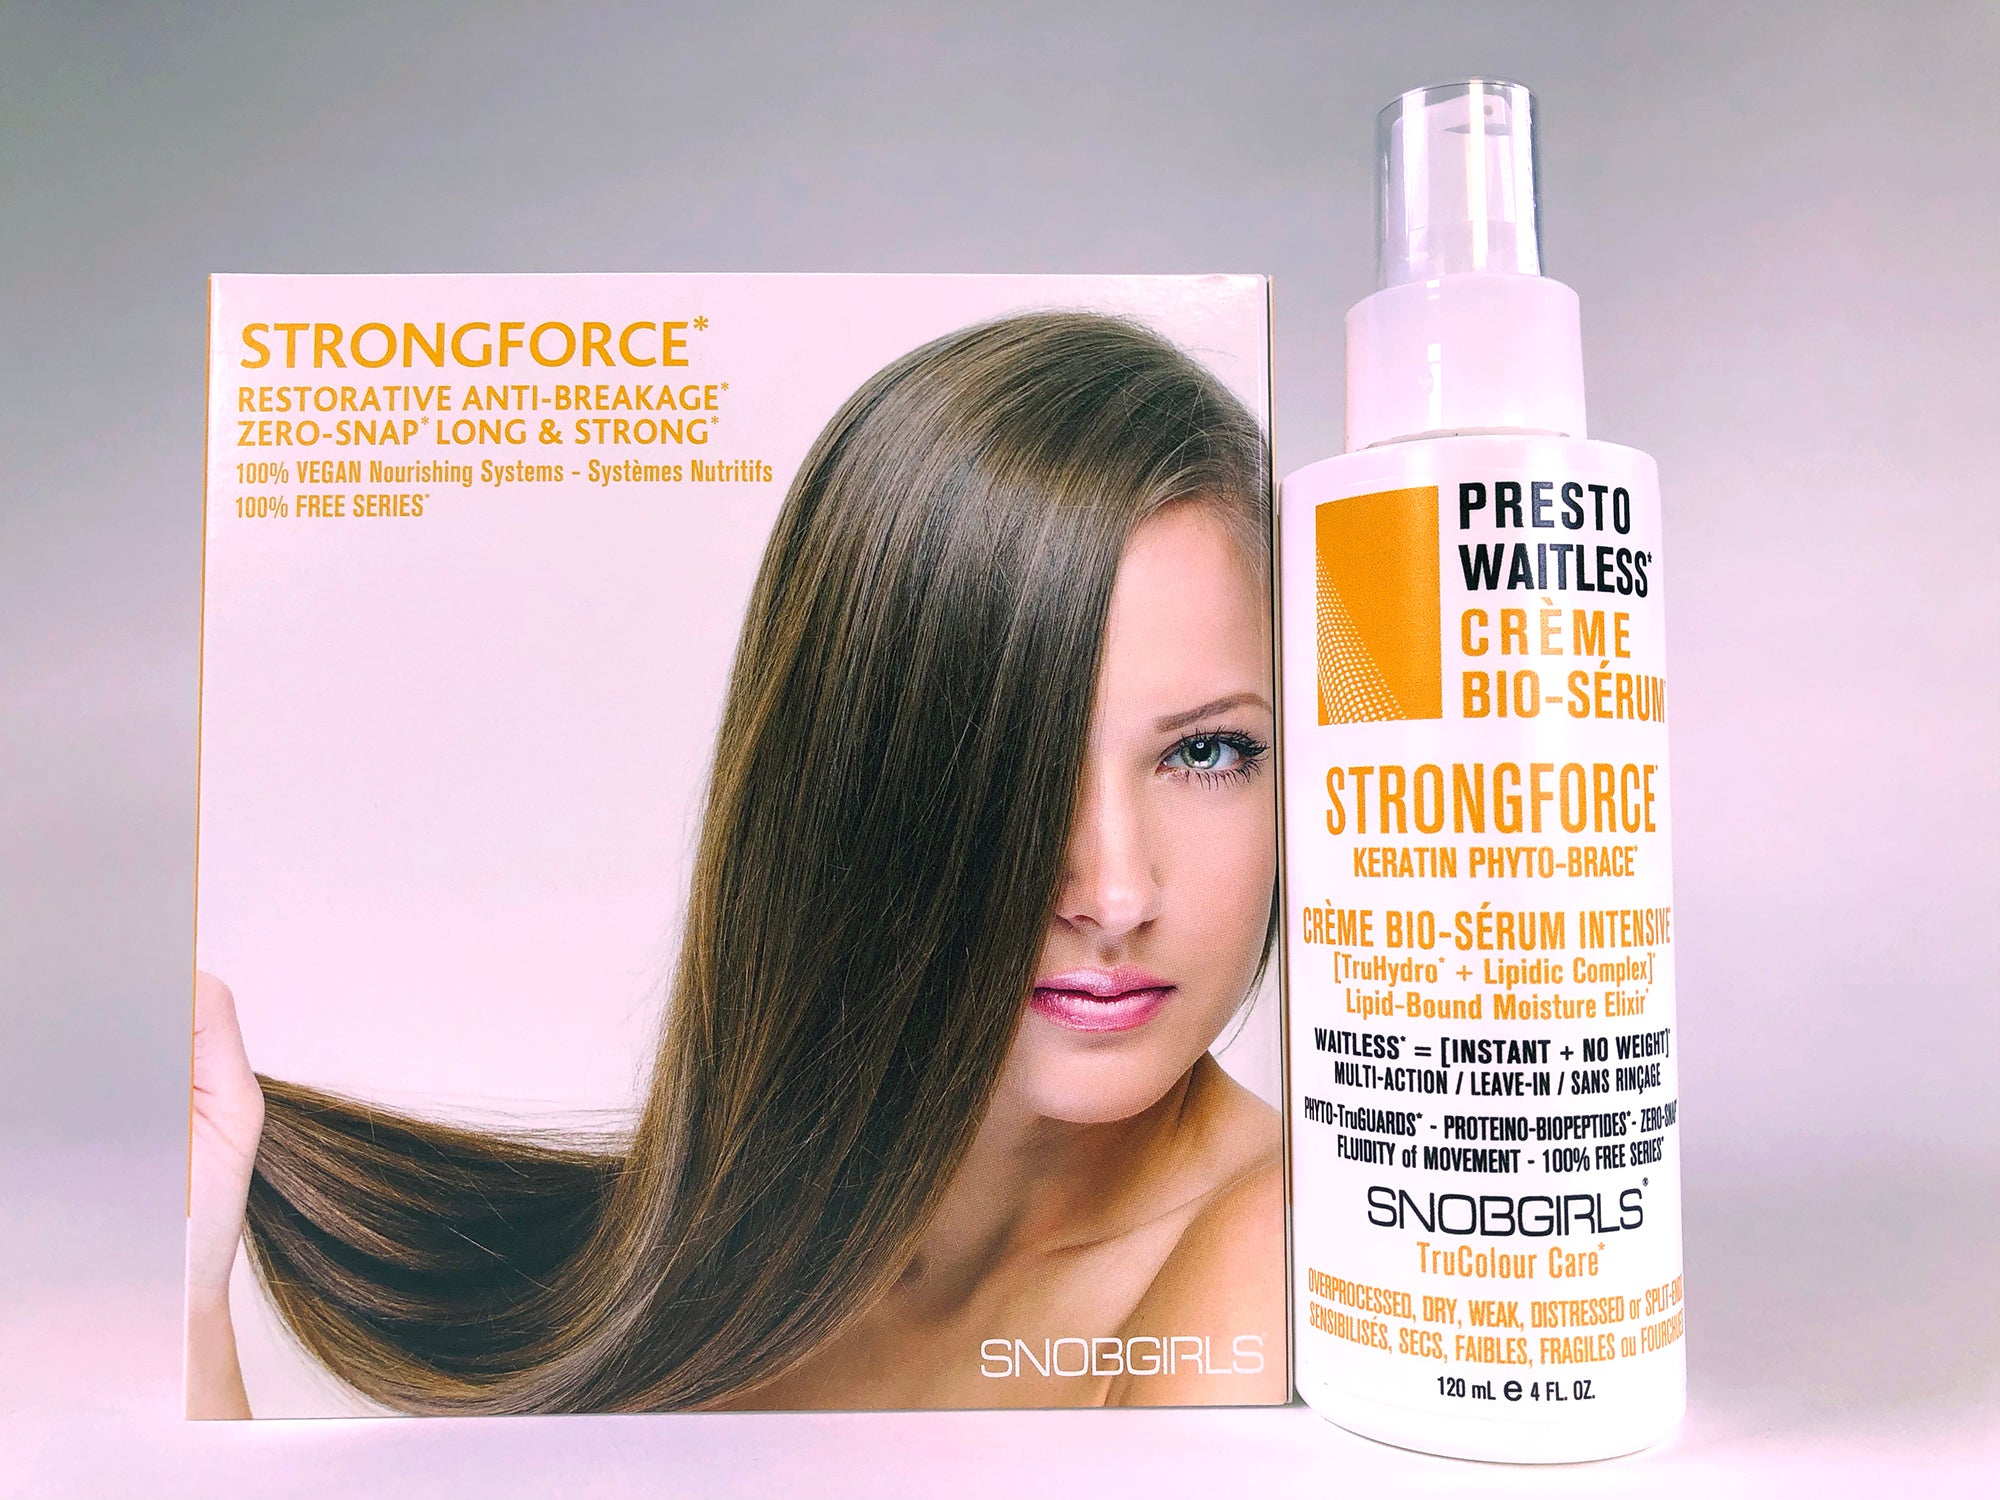 STRONGFORCE Restorative Anti-Breakage Creme Bio-serum - SNOBGIRLS.com